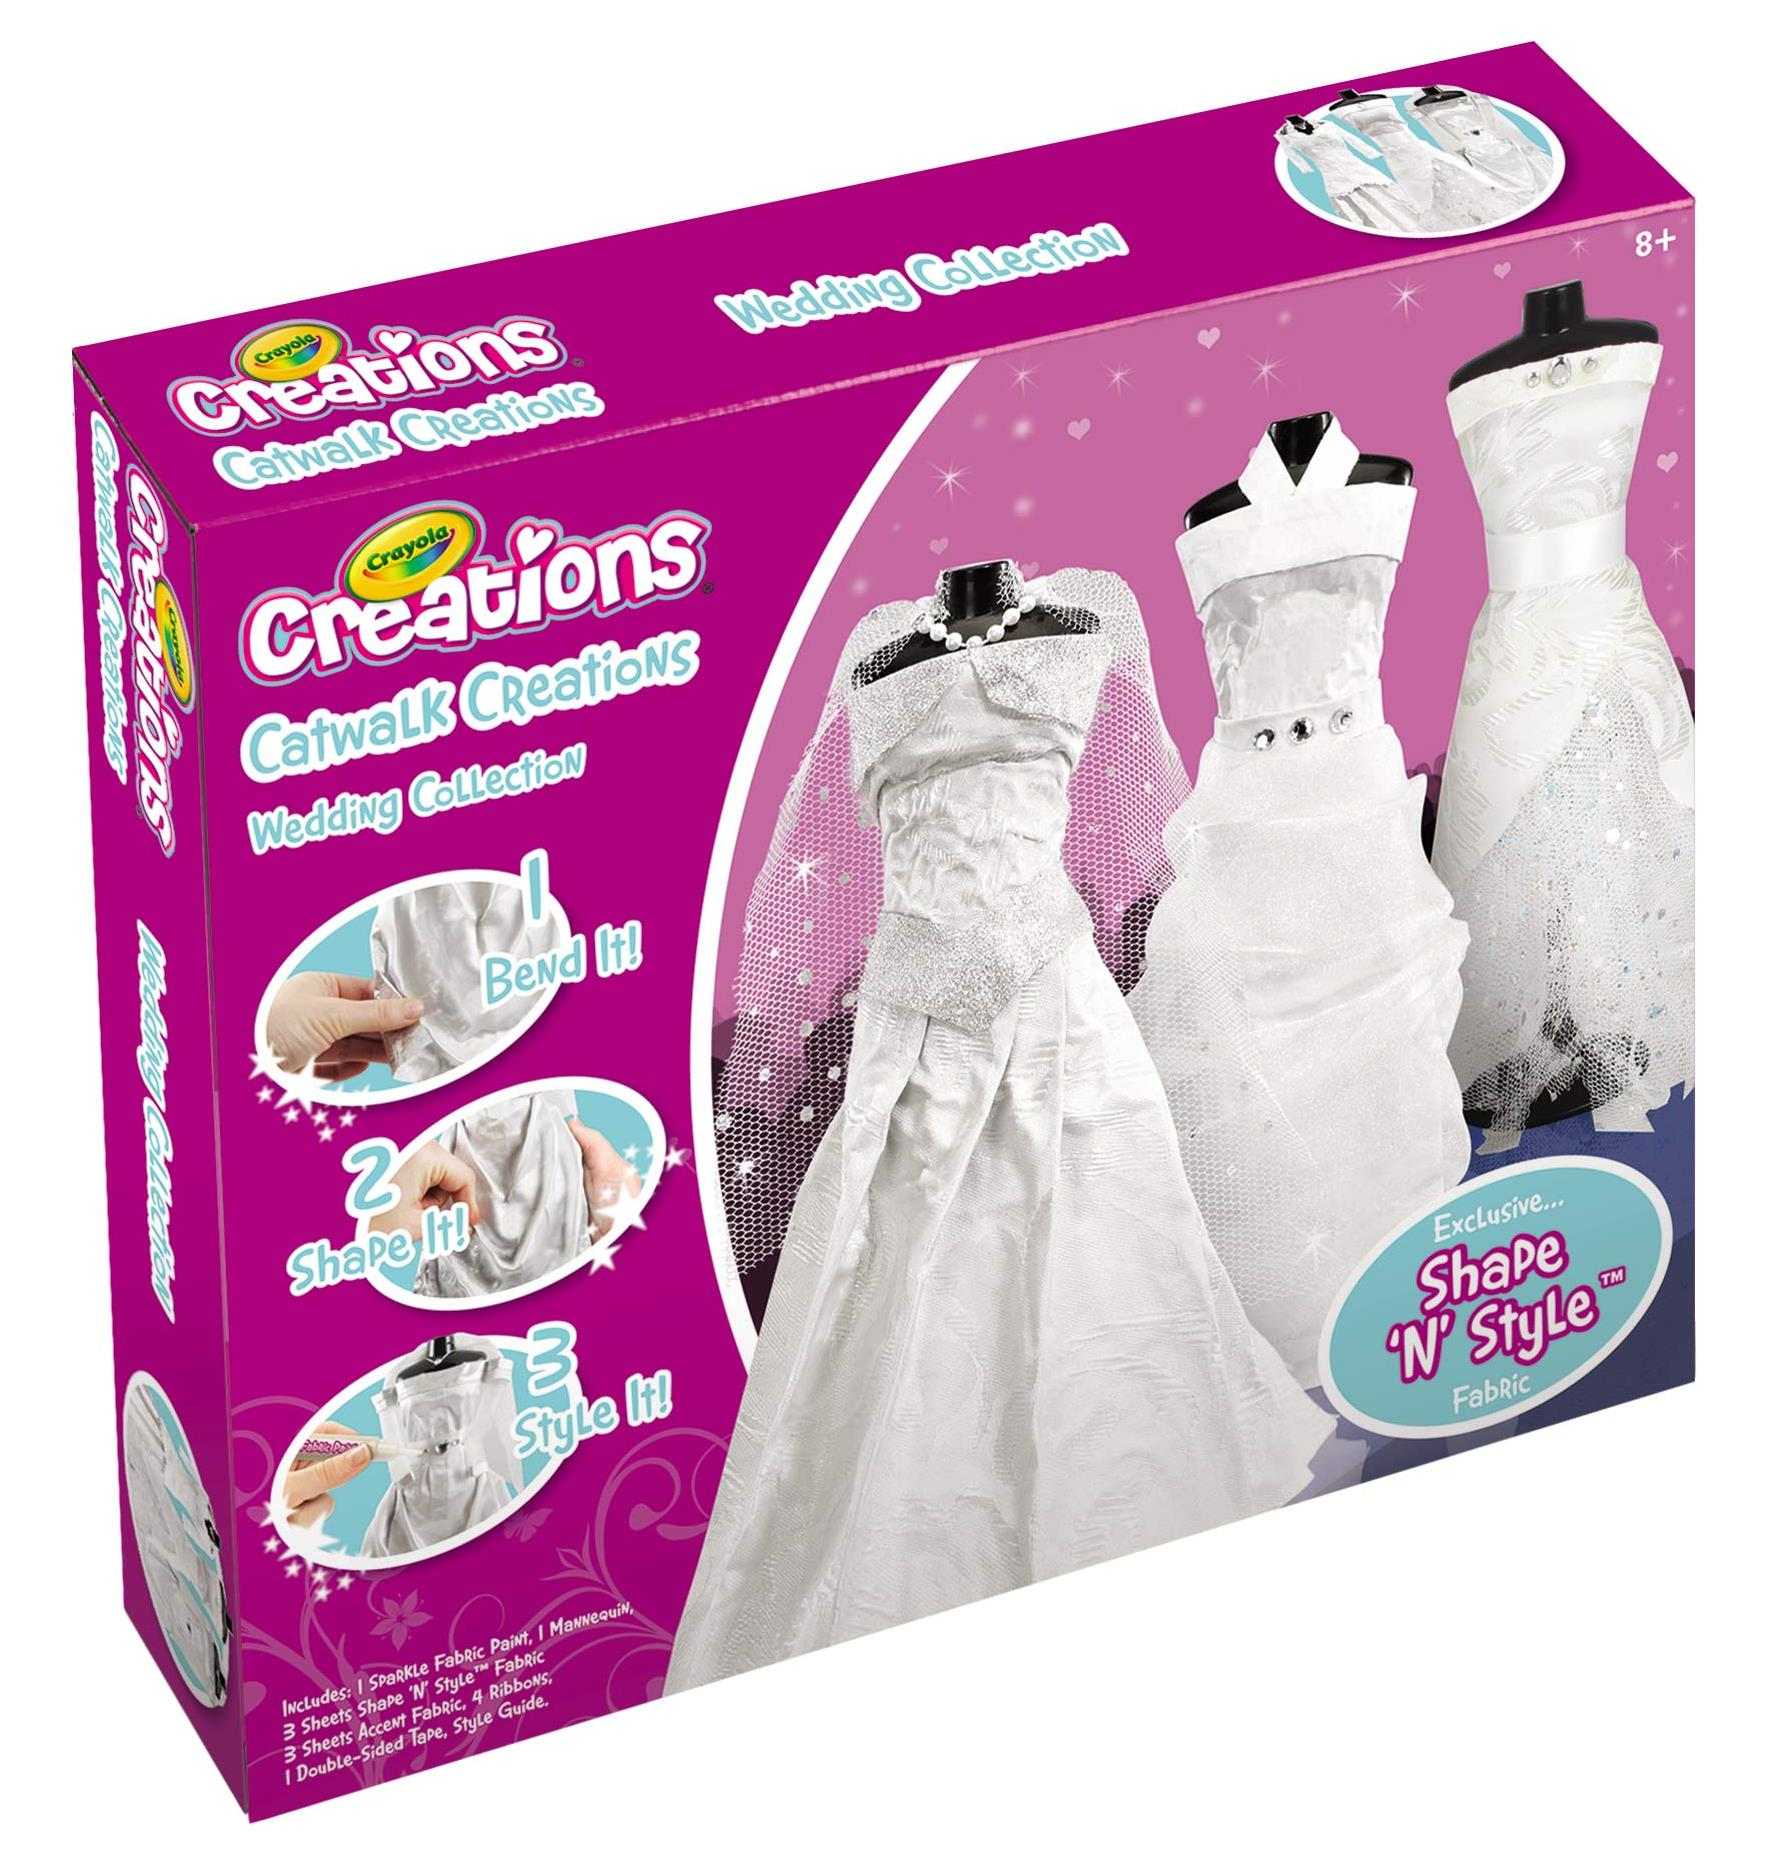 28 1205 Crayola Creations Catwalk Creations Wedding Collection Limited Stock Available